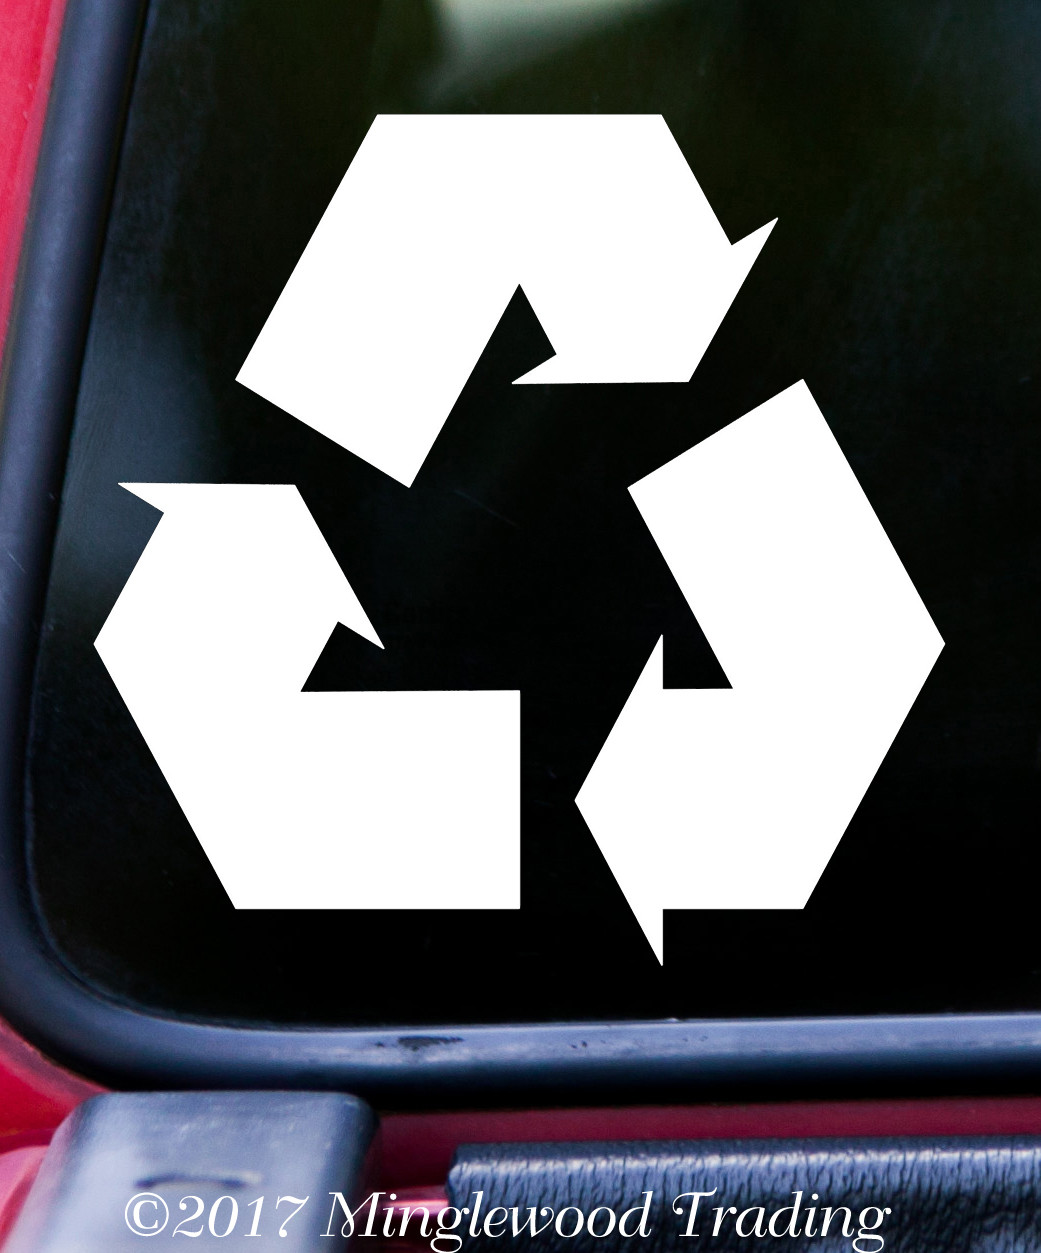 Recycle Symbol 5 X 5 Vinyl Decal Sticker Reduce Reuse Recycling